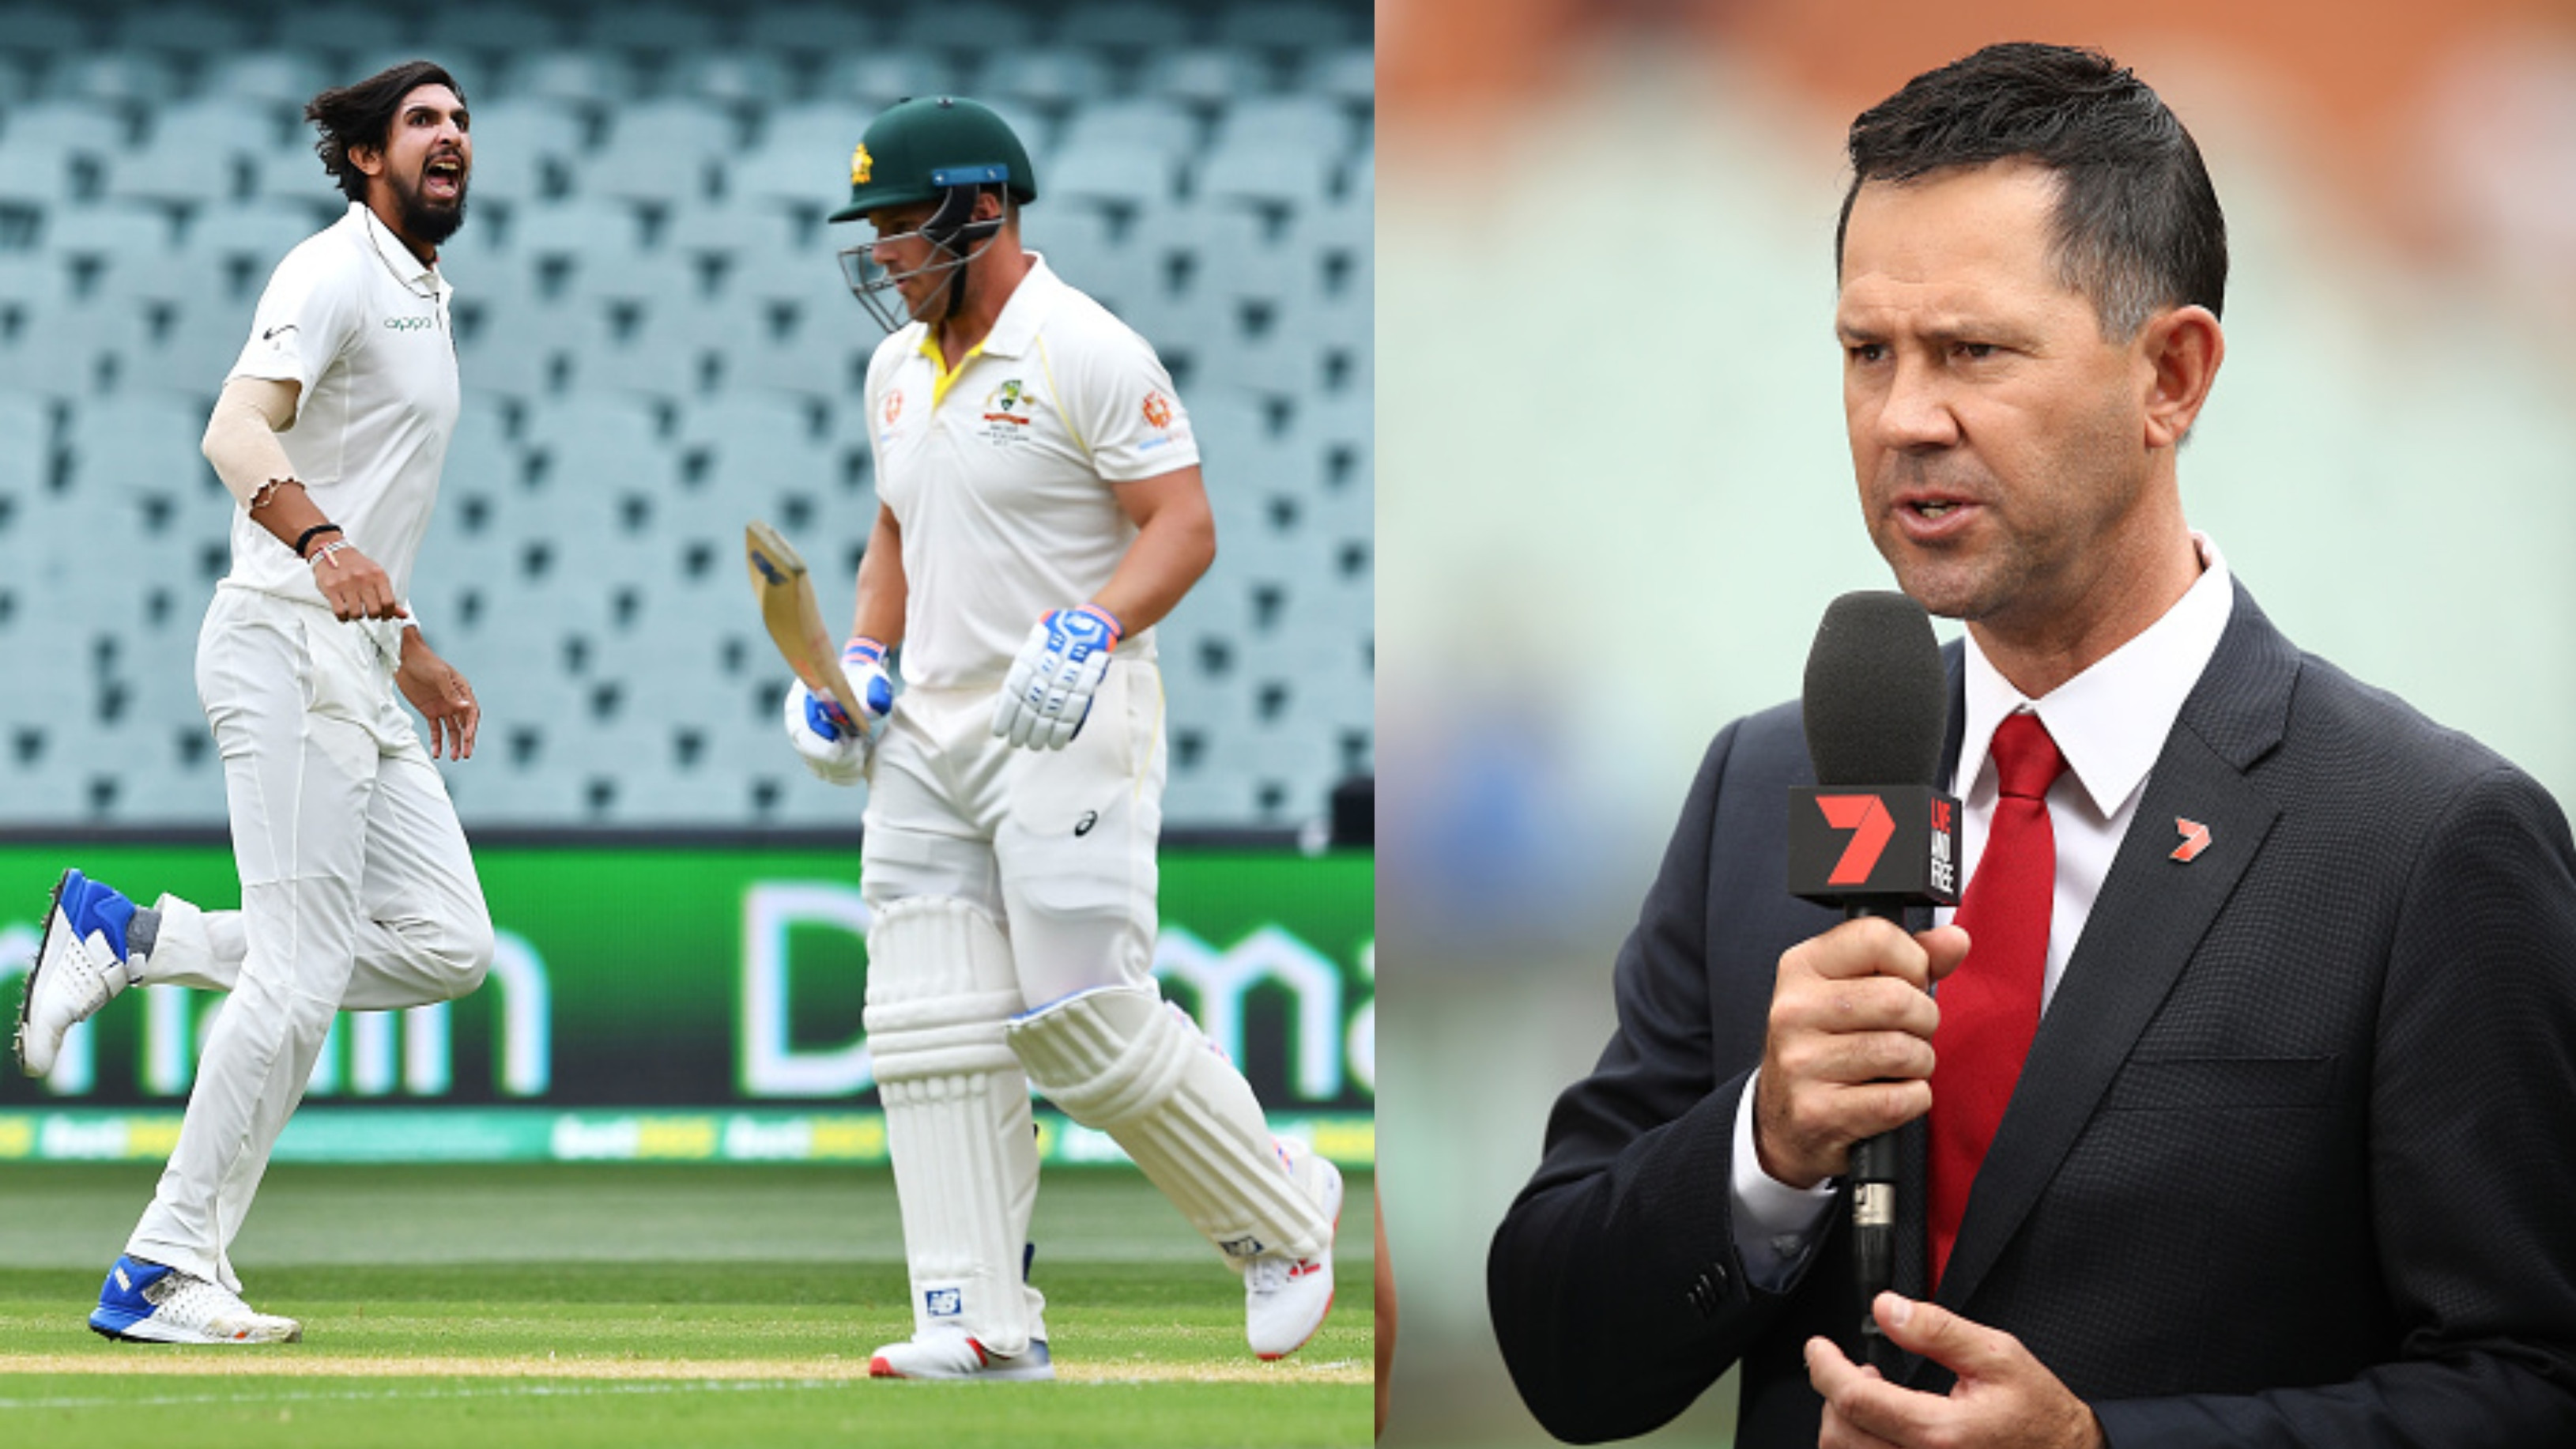 AUS v IND 2018-19: Ricky Ponting feels Aaron Finch needs a lot of work on his Test match game